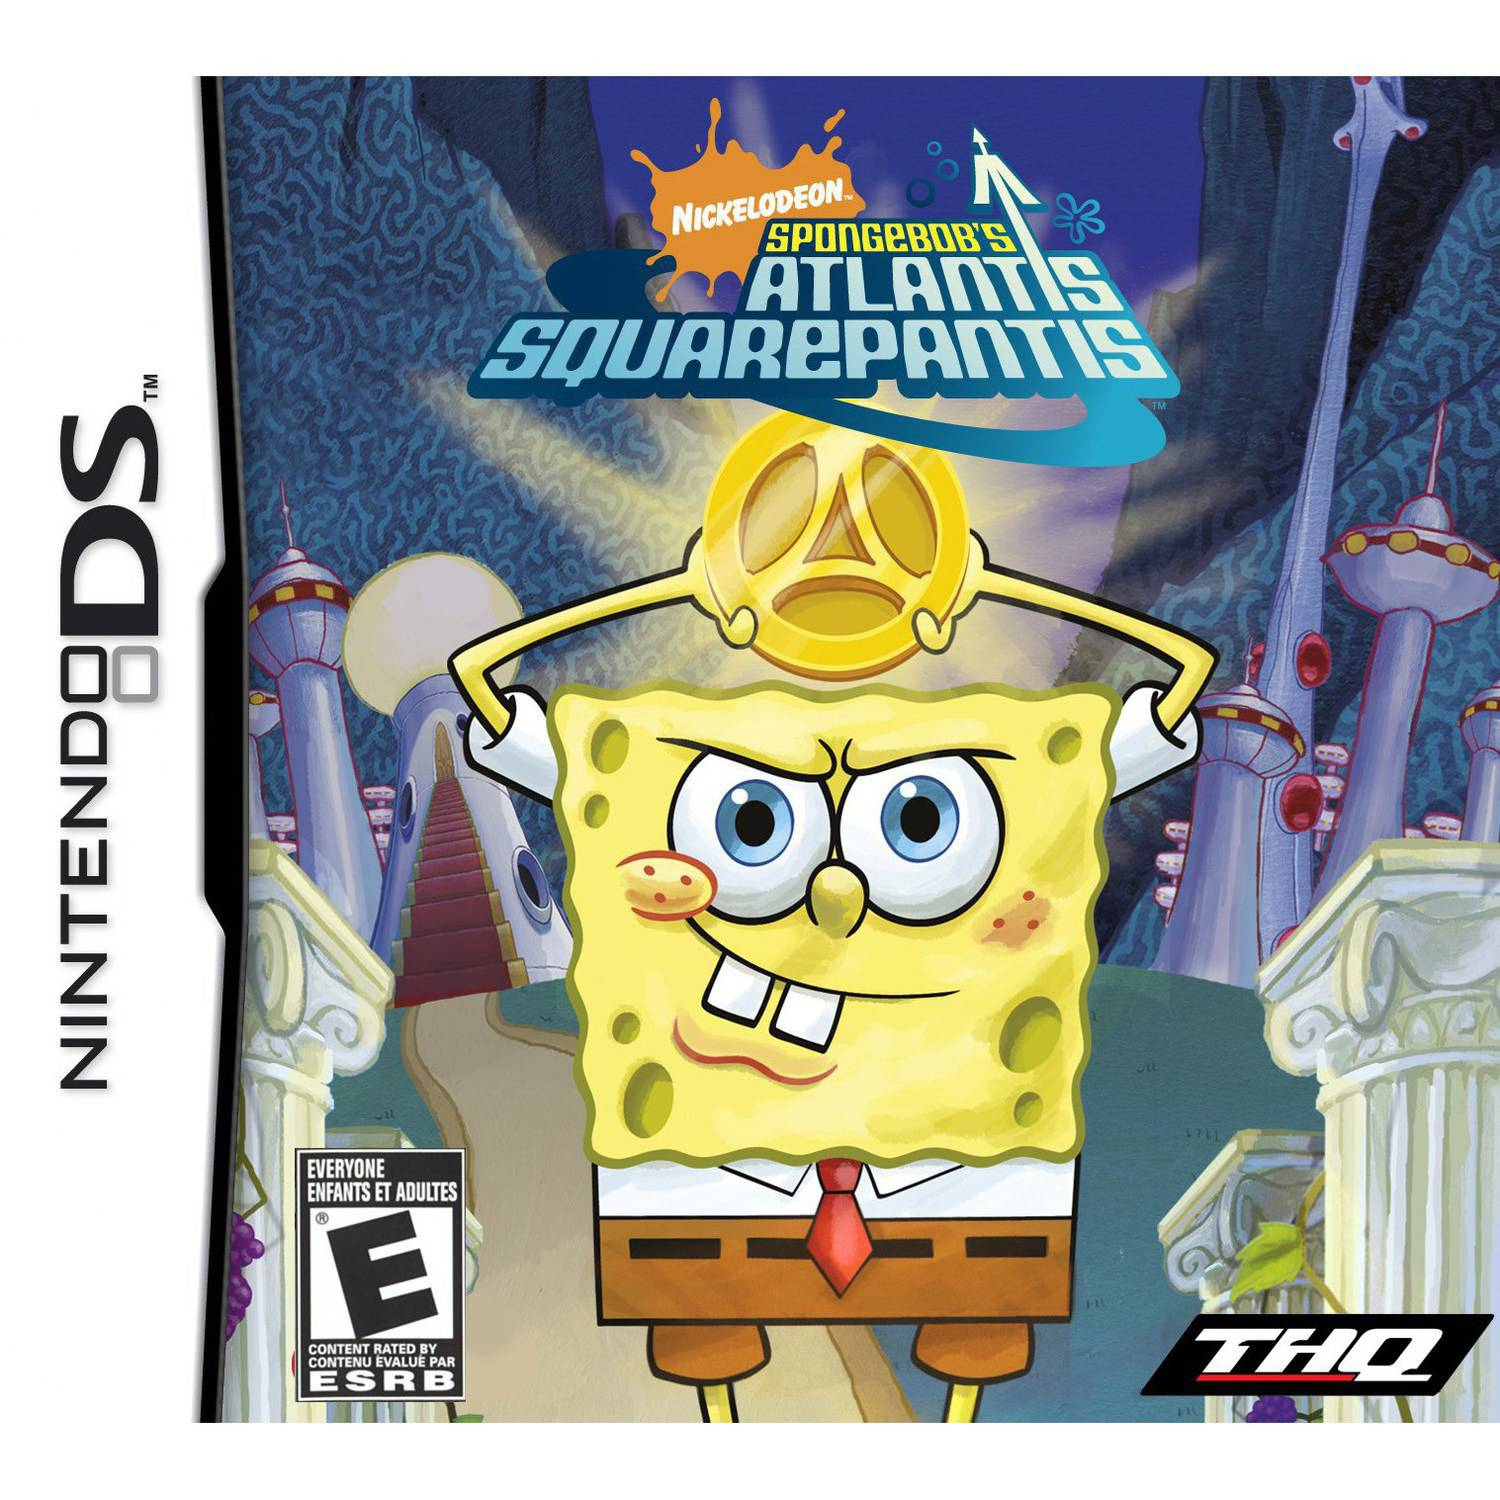 Spongebob Atlantis Squarepantis NDS Game and Sakar NDS Case Bundle